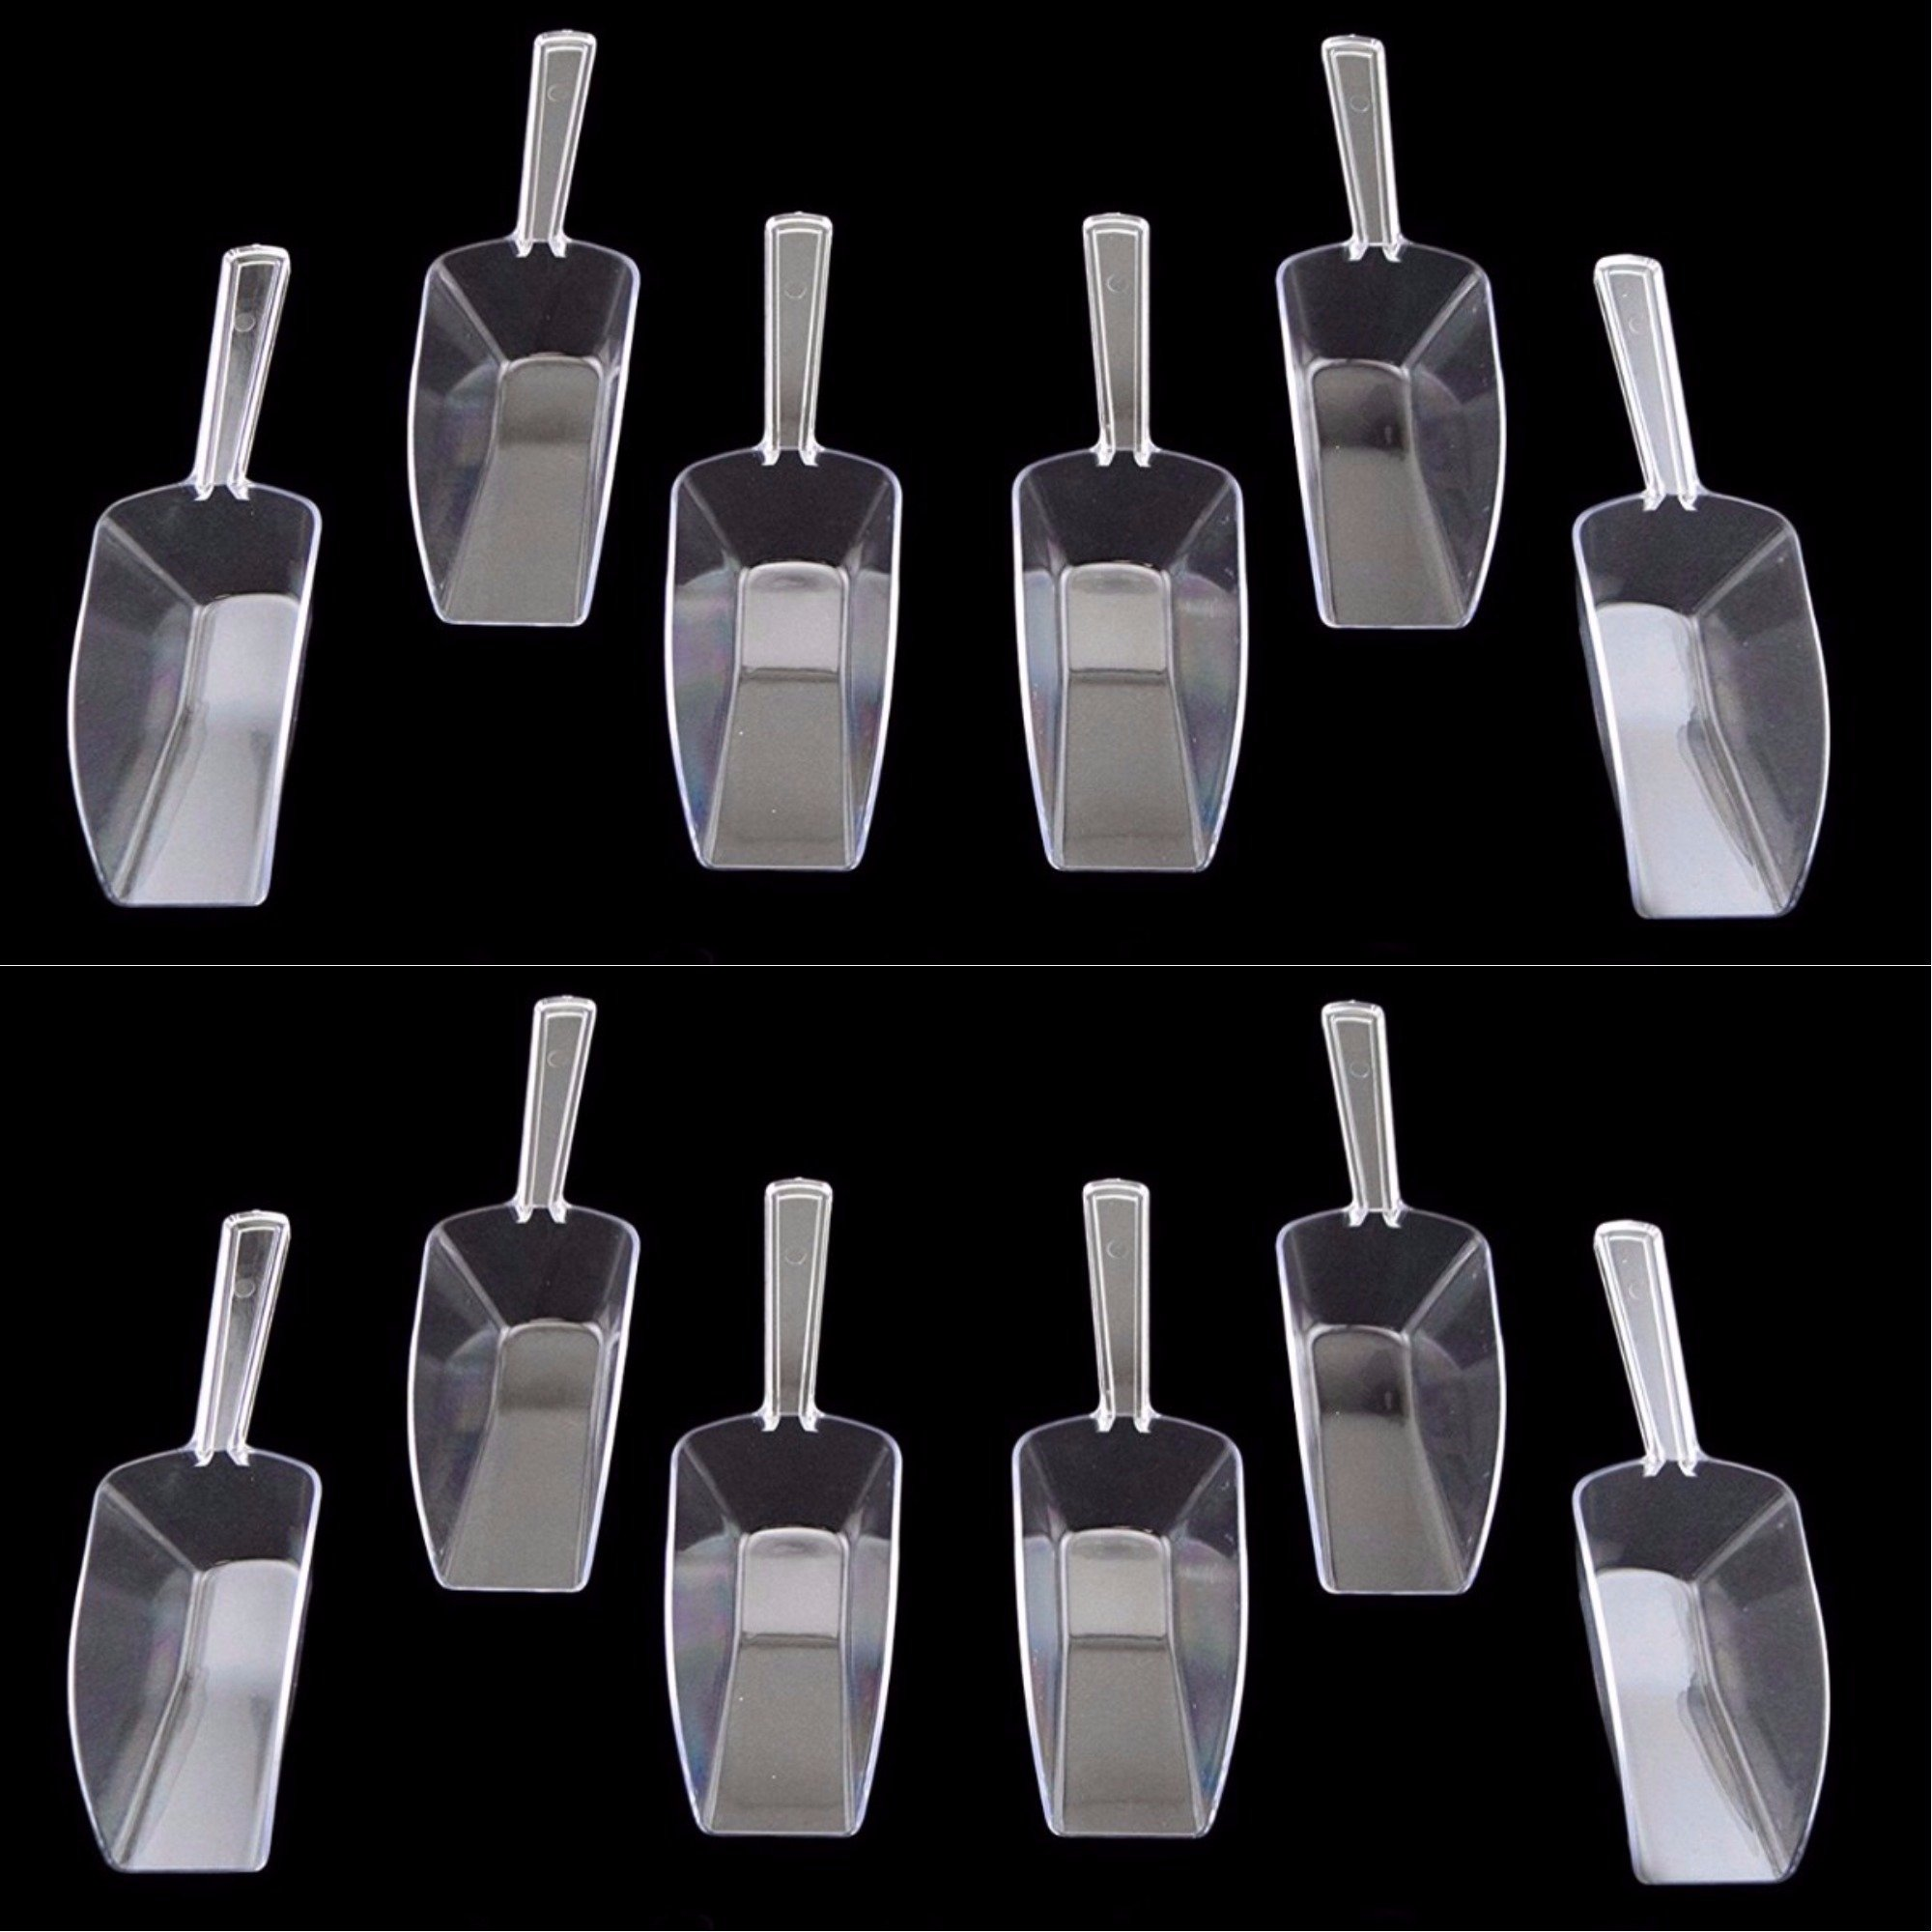 12pcs Small Clear Scoops Acrylic Plastic Wedding Kitchen Bridal Party Ice Cream Favor Bar Protein Powders Buffet Dessert Coffee Tea Candy